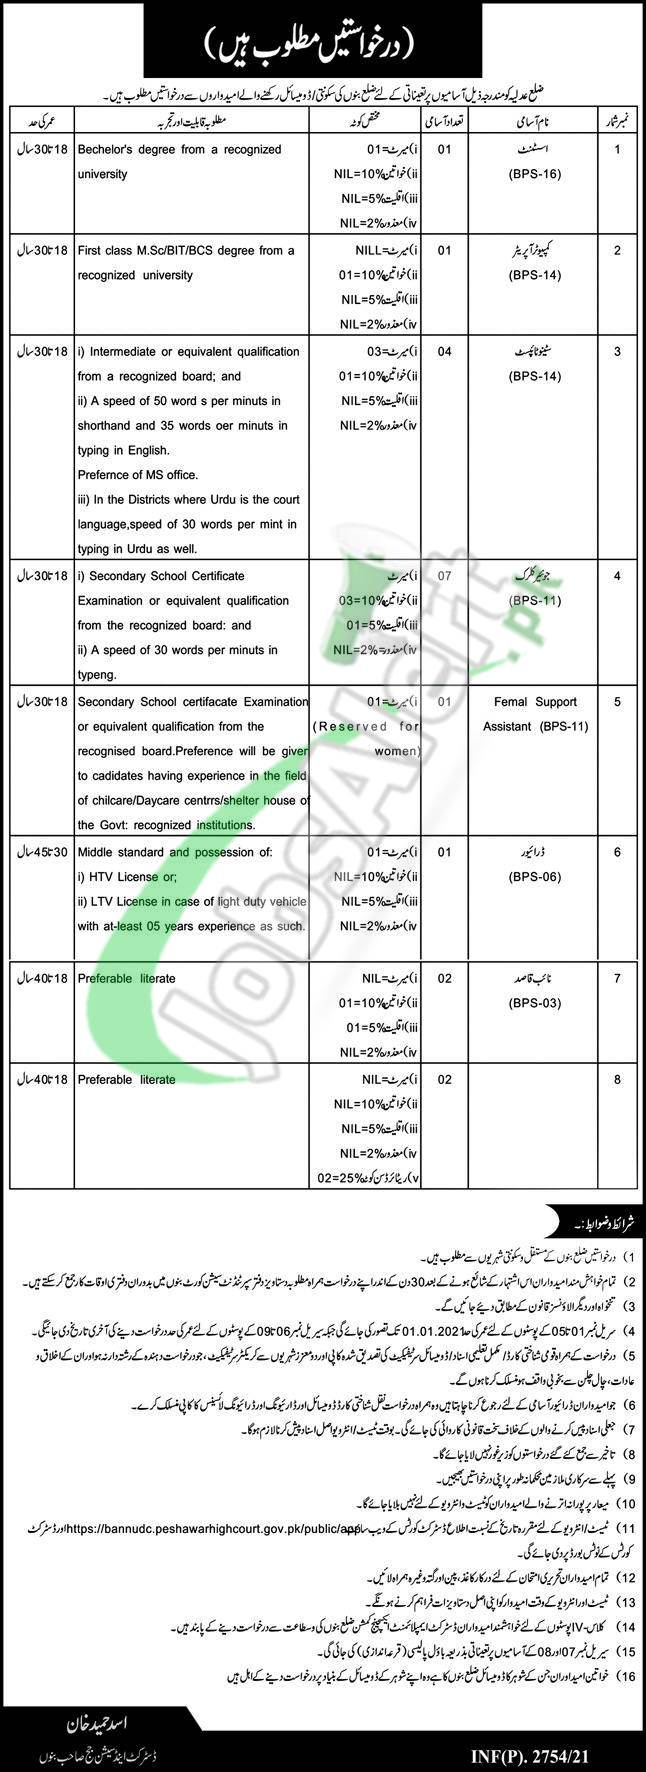 District & Session Court Bannu Latest Jobs 2021 for BPS-03 to BPS-16